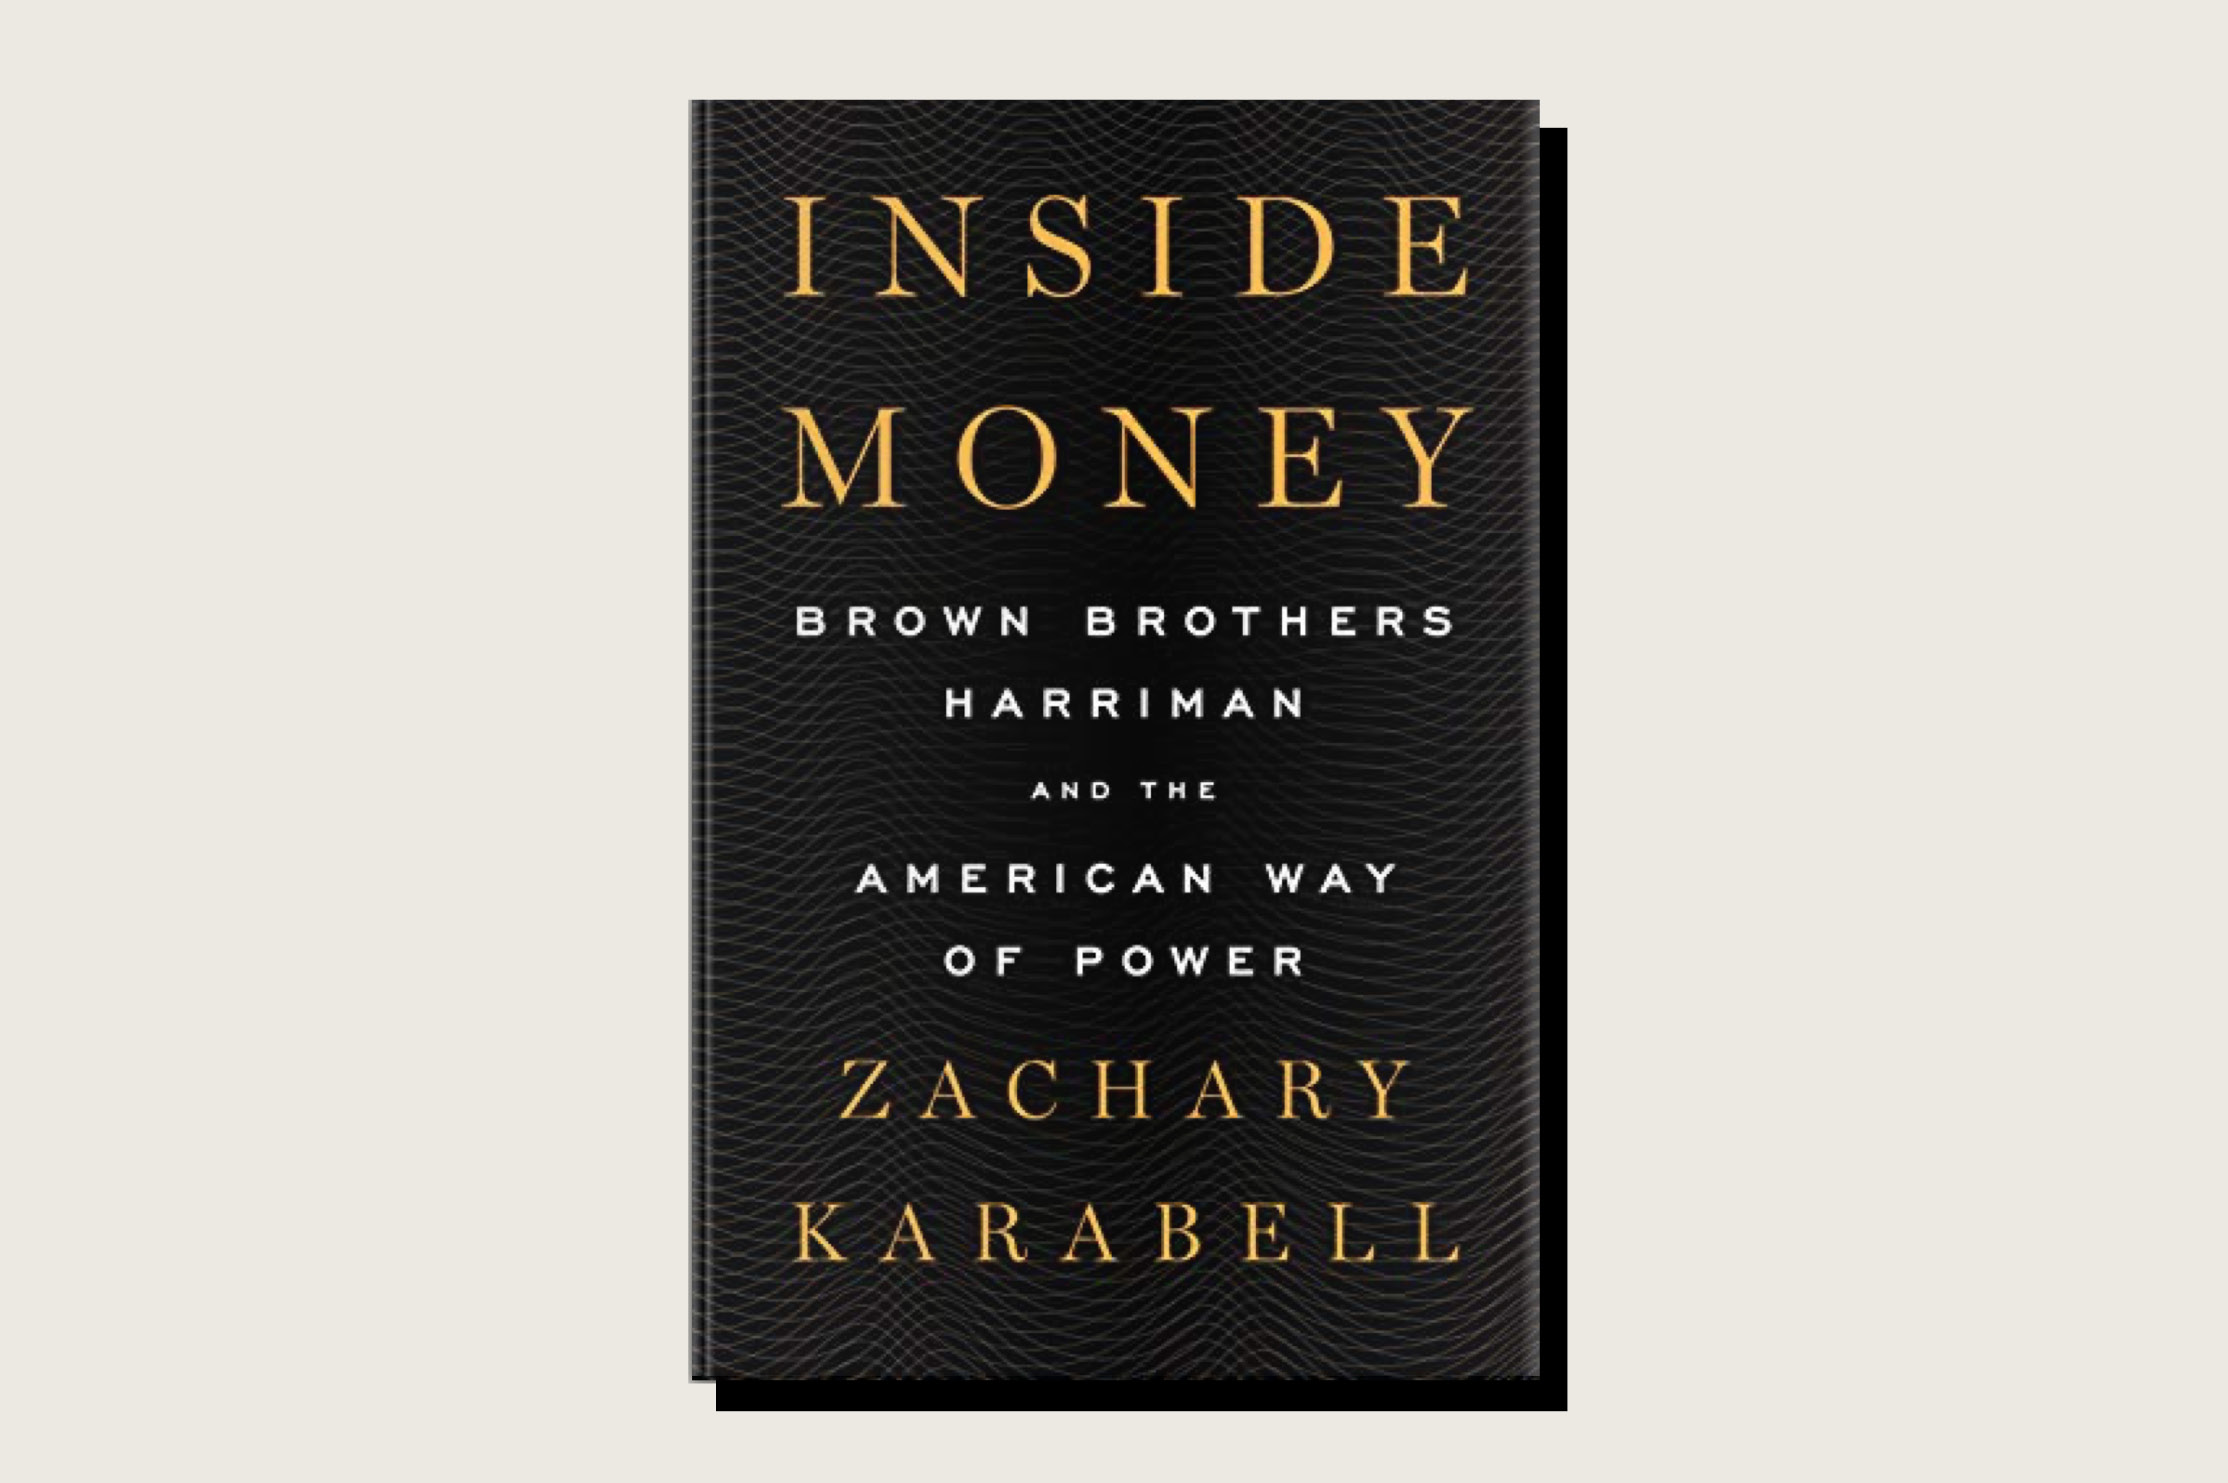 Inside Money: Brown Brothers Harriman and the American Way of Power, Zachary Karabell, Penguin Press, 448 pp., , May 2021